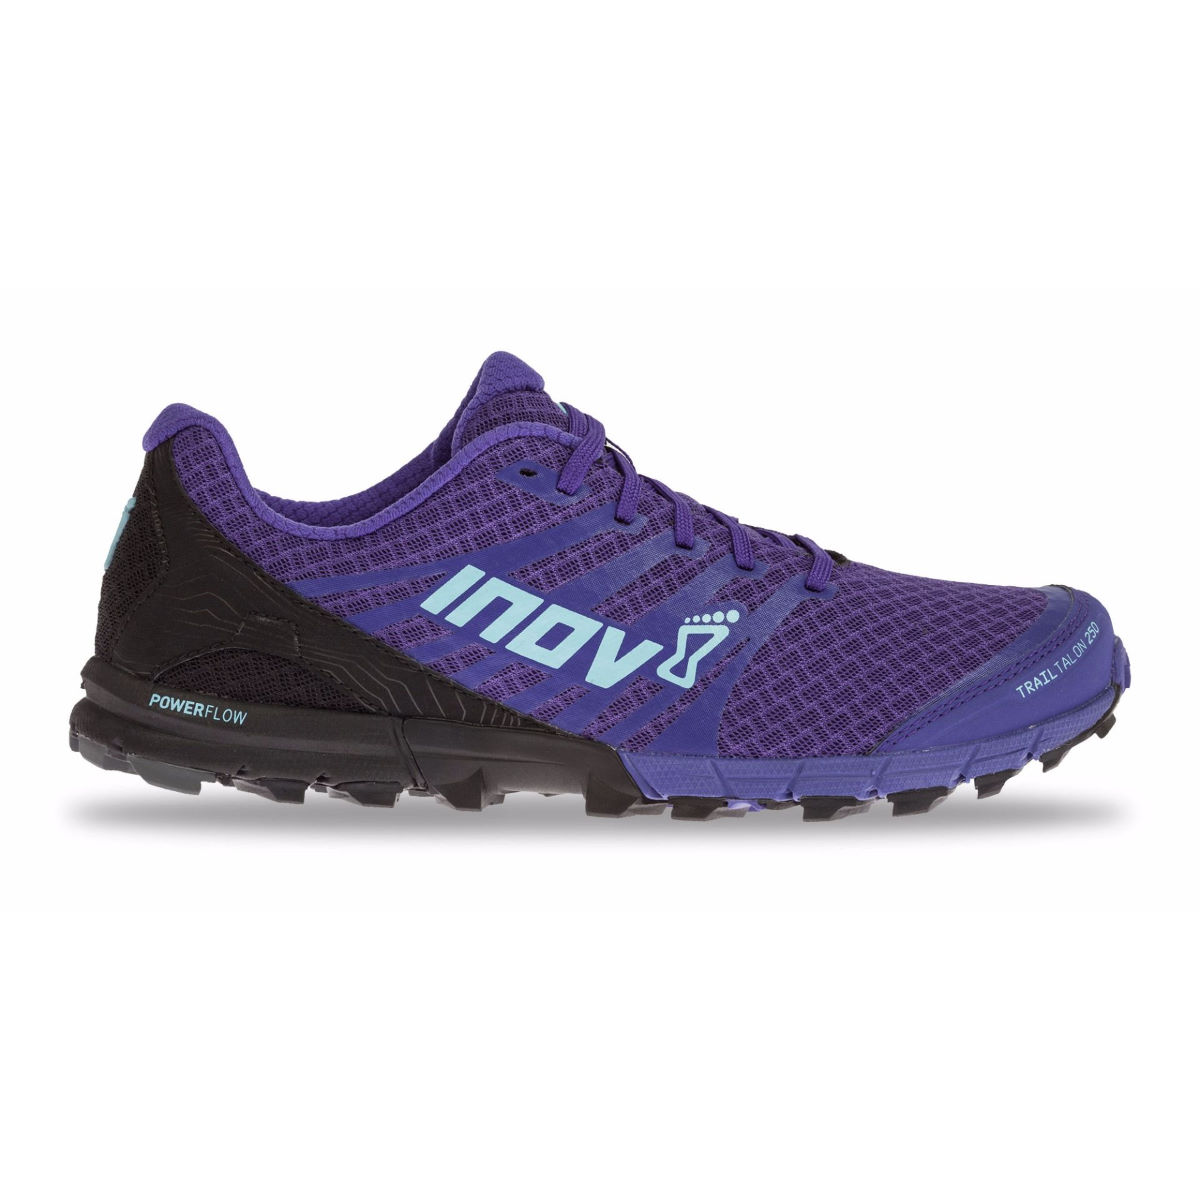 Chaussures Femme Inov-8 Trail Talon 250 - UK 4 PURPLE/BLUE/BLACK